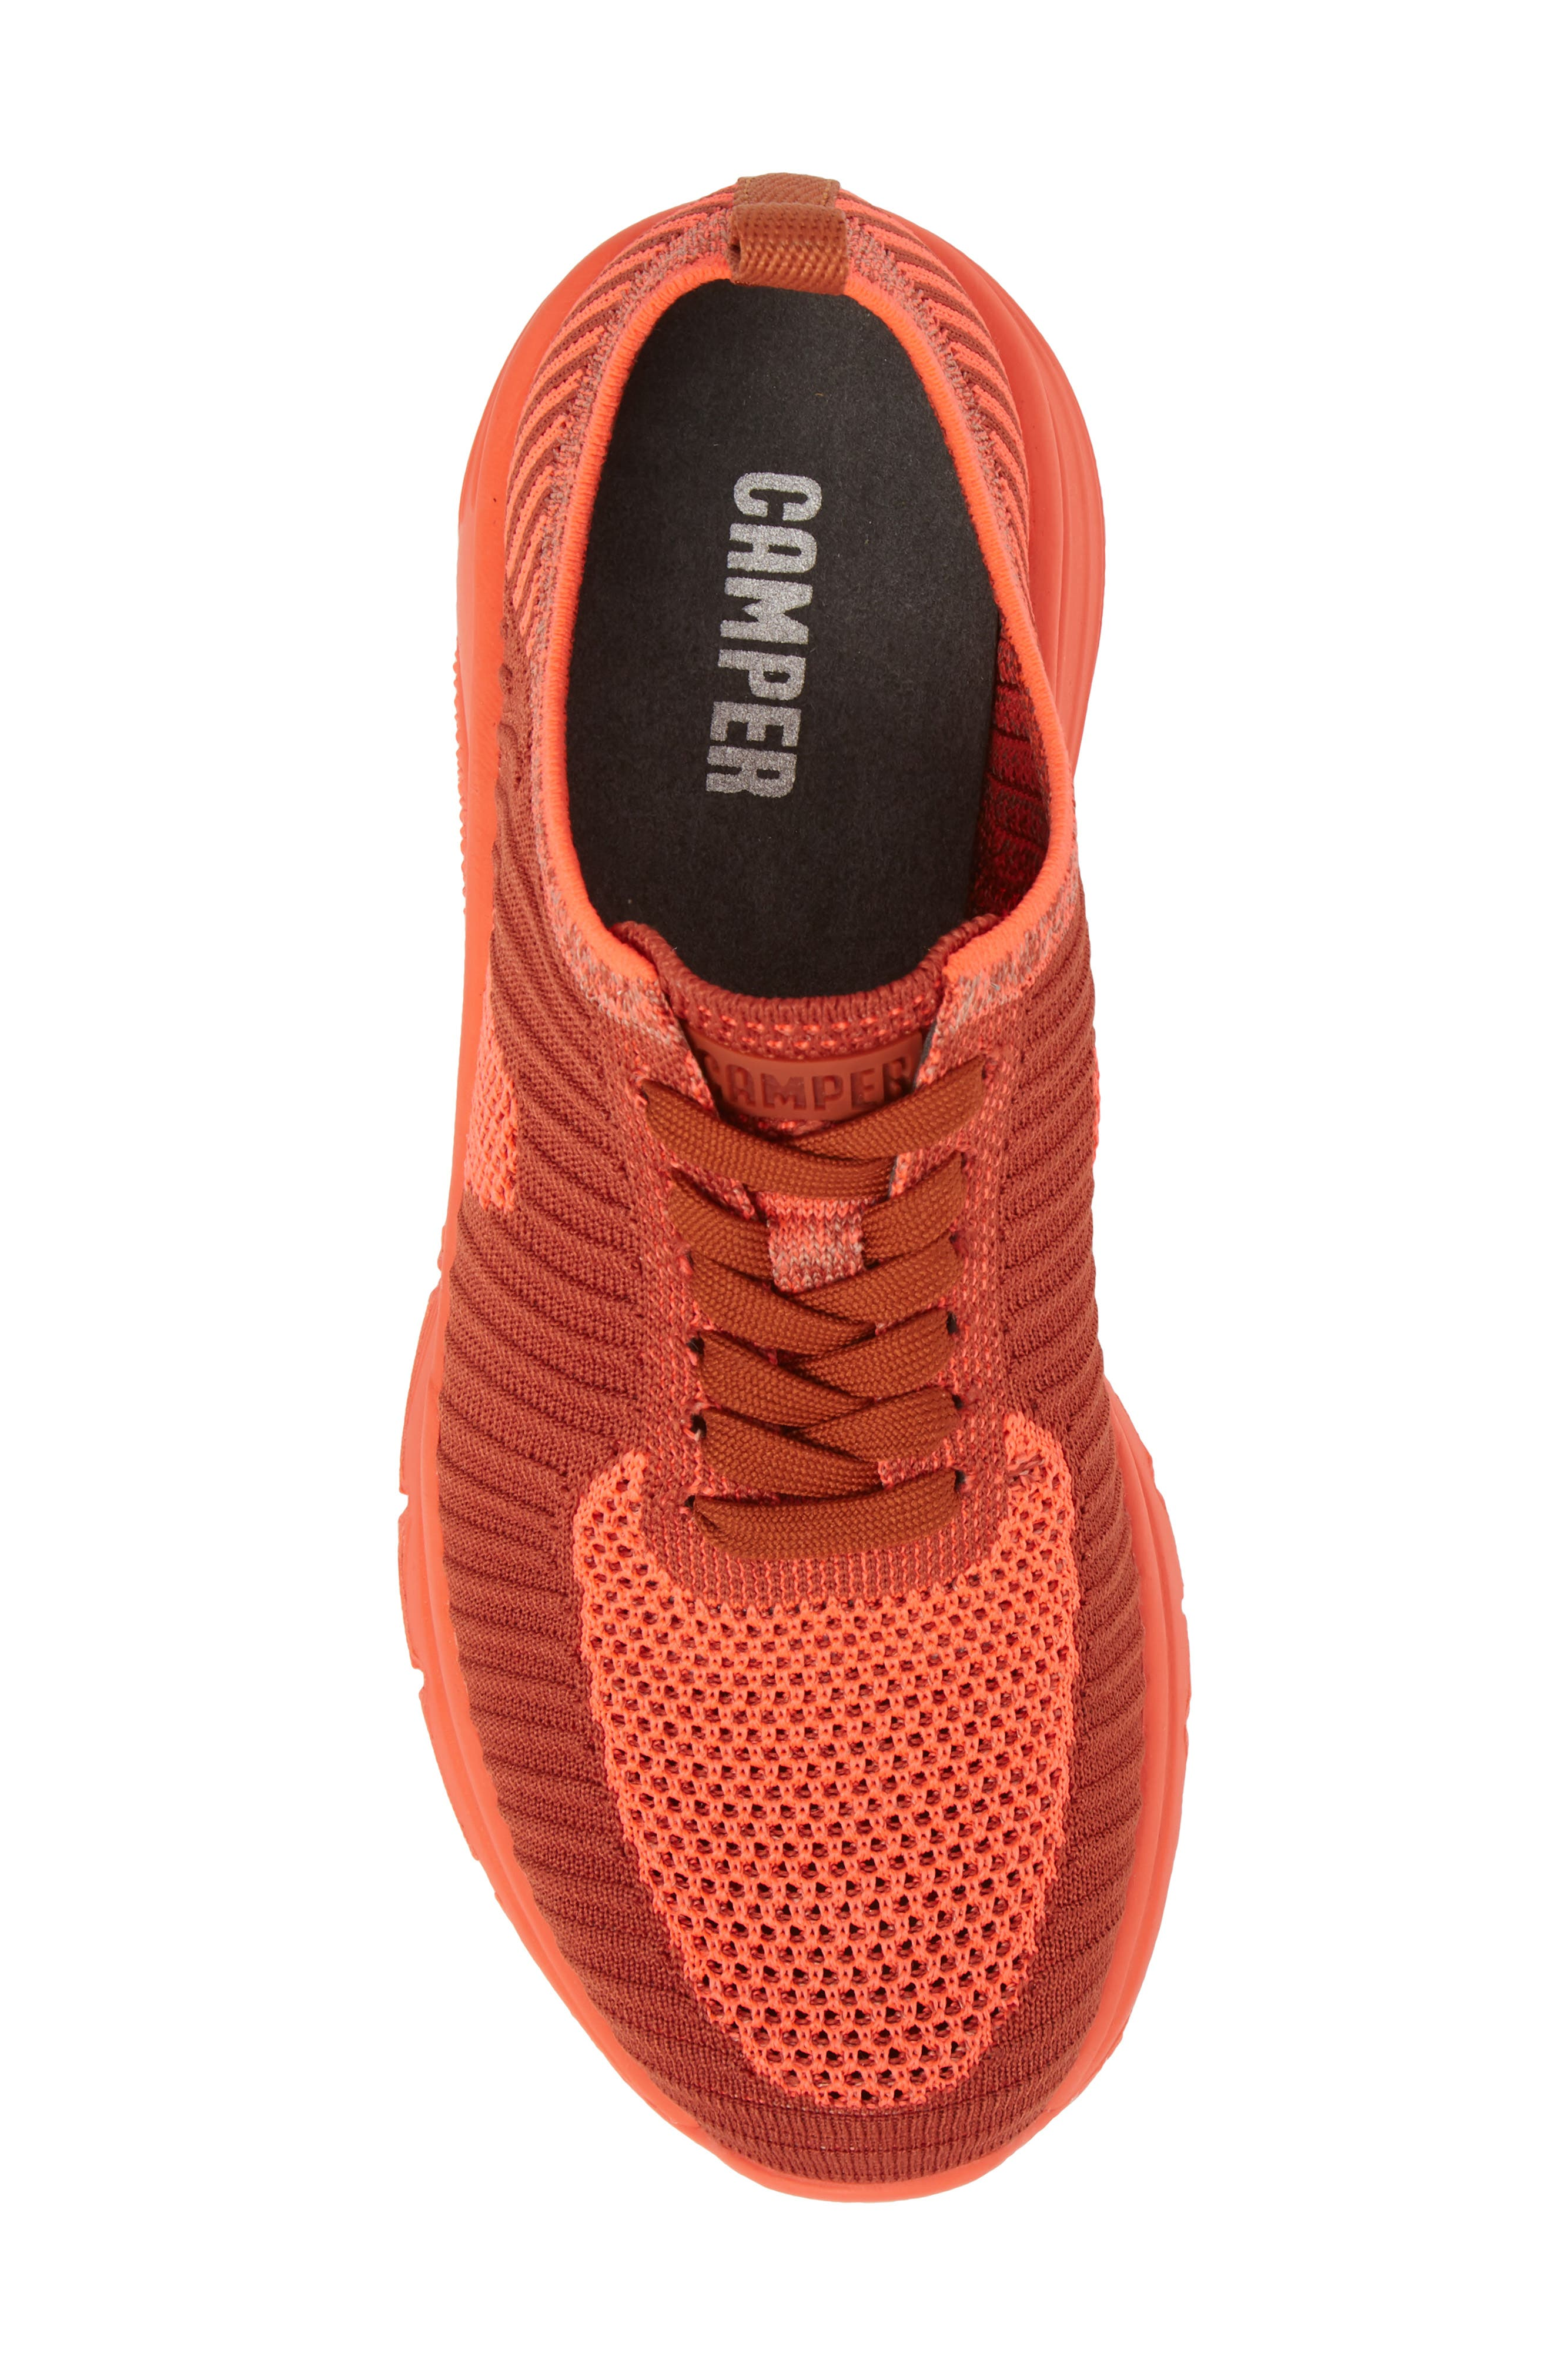 Drift Knit Sneaker,                             Alternate thumbnail 5, color,                             RED - ASSORTED FABRIC